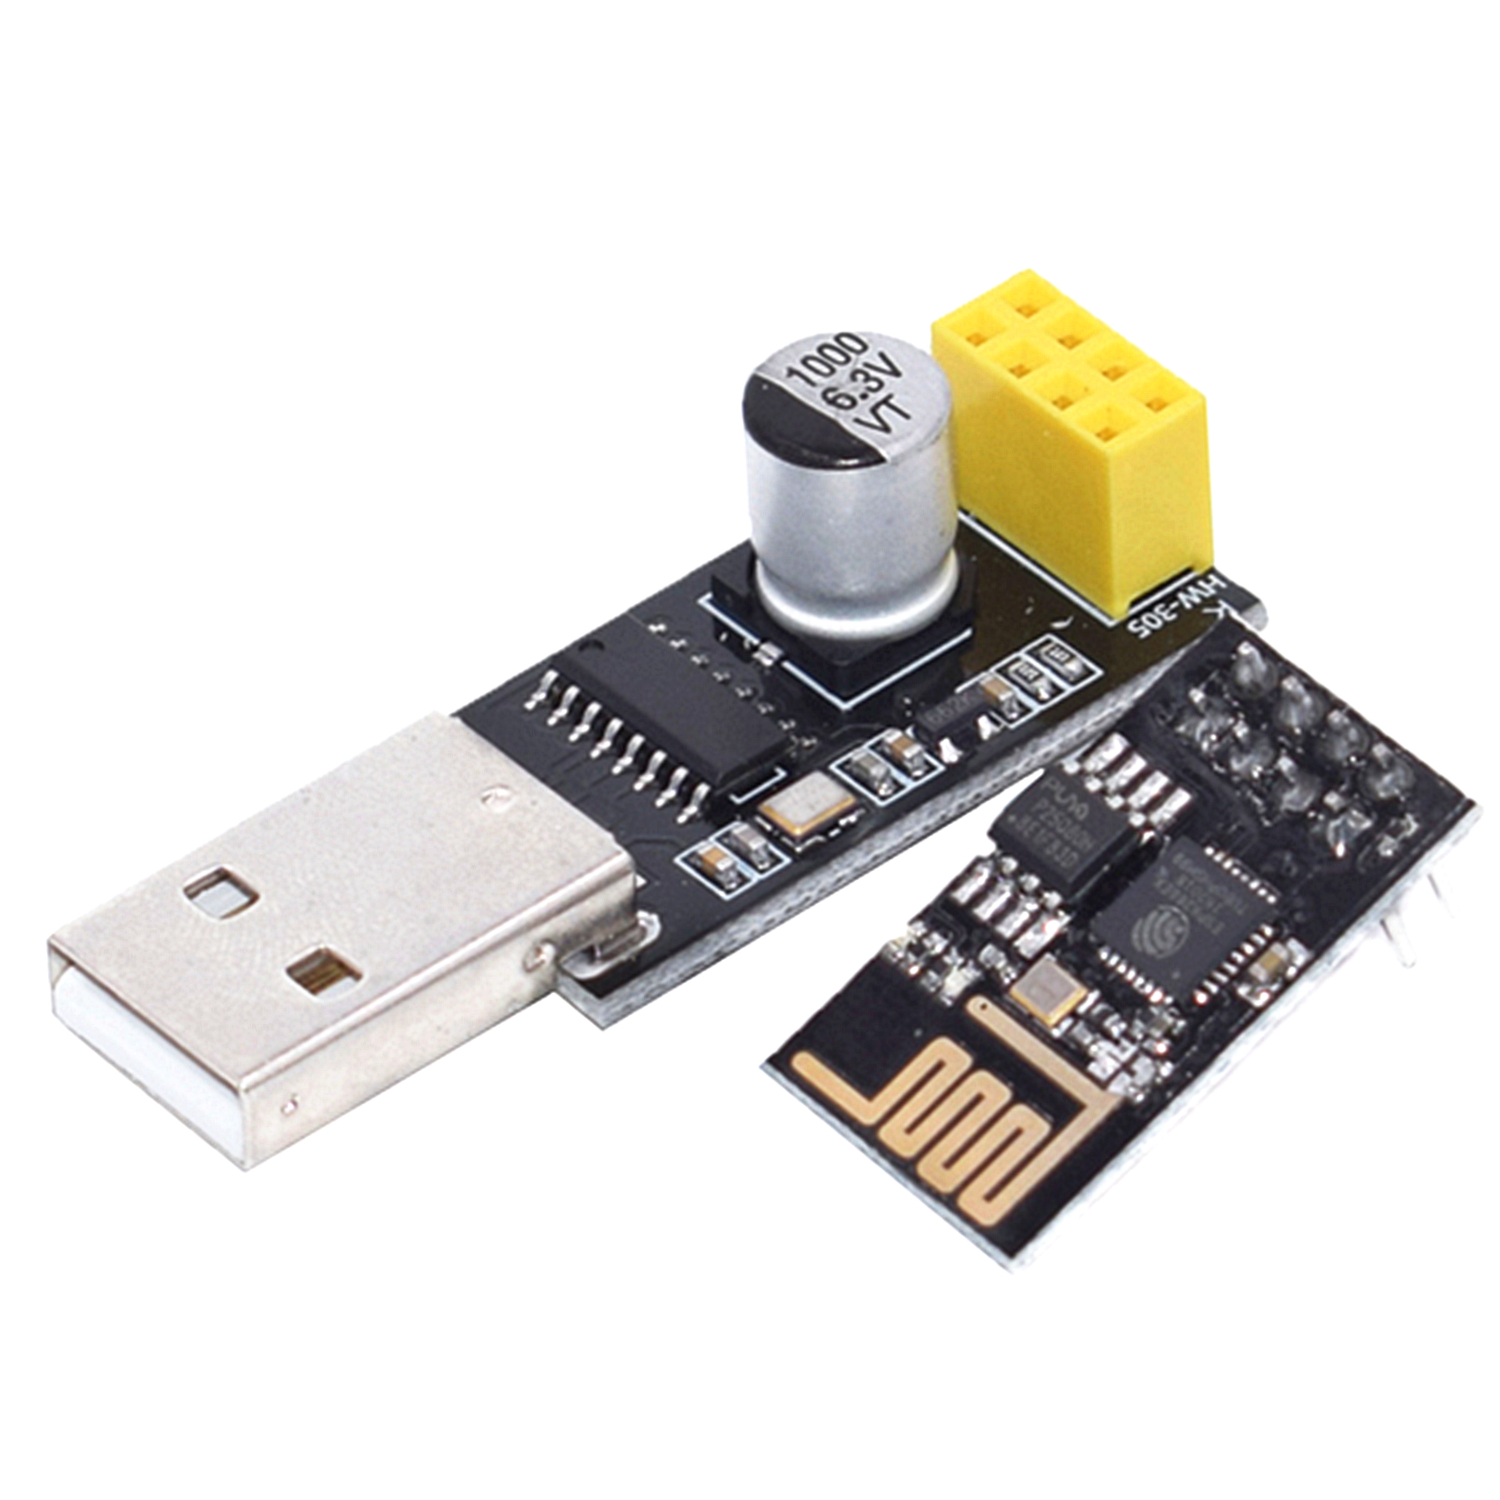 CH340 USB to ESP8266 WiFi Module Adapter Computer Phone Wireless Communication Microcontroller for Arduino